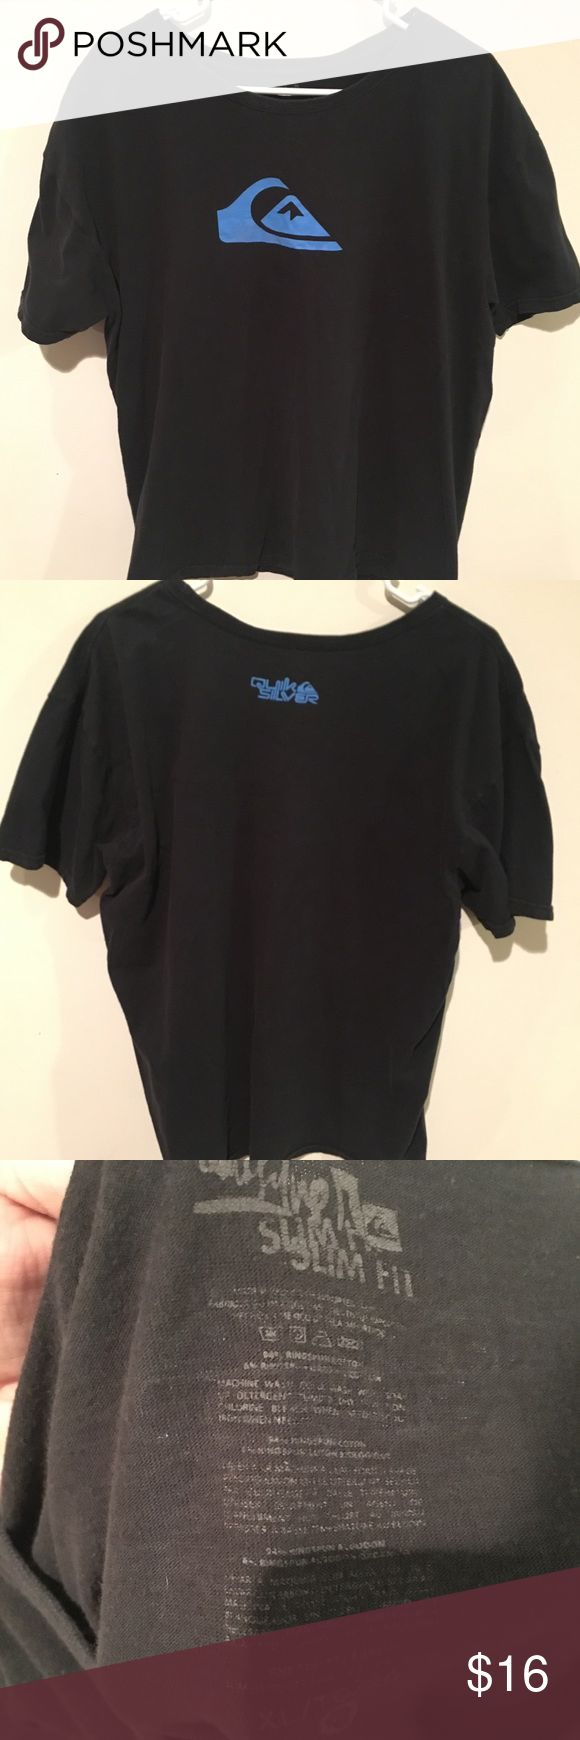 Black and blue quick silver t shirt Black and blue quick silver t shirt! Barely ever worn and in great condition!! quick silver Shirts Tees - Short Sleeve